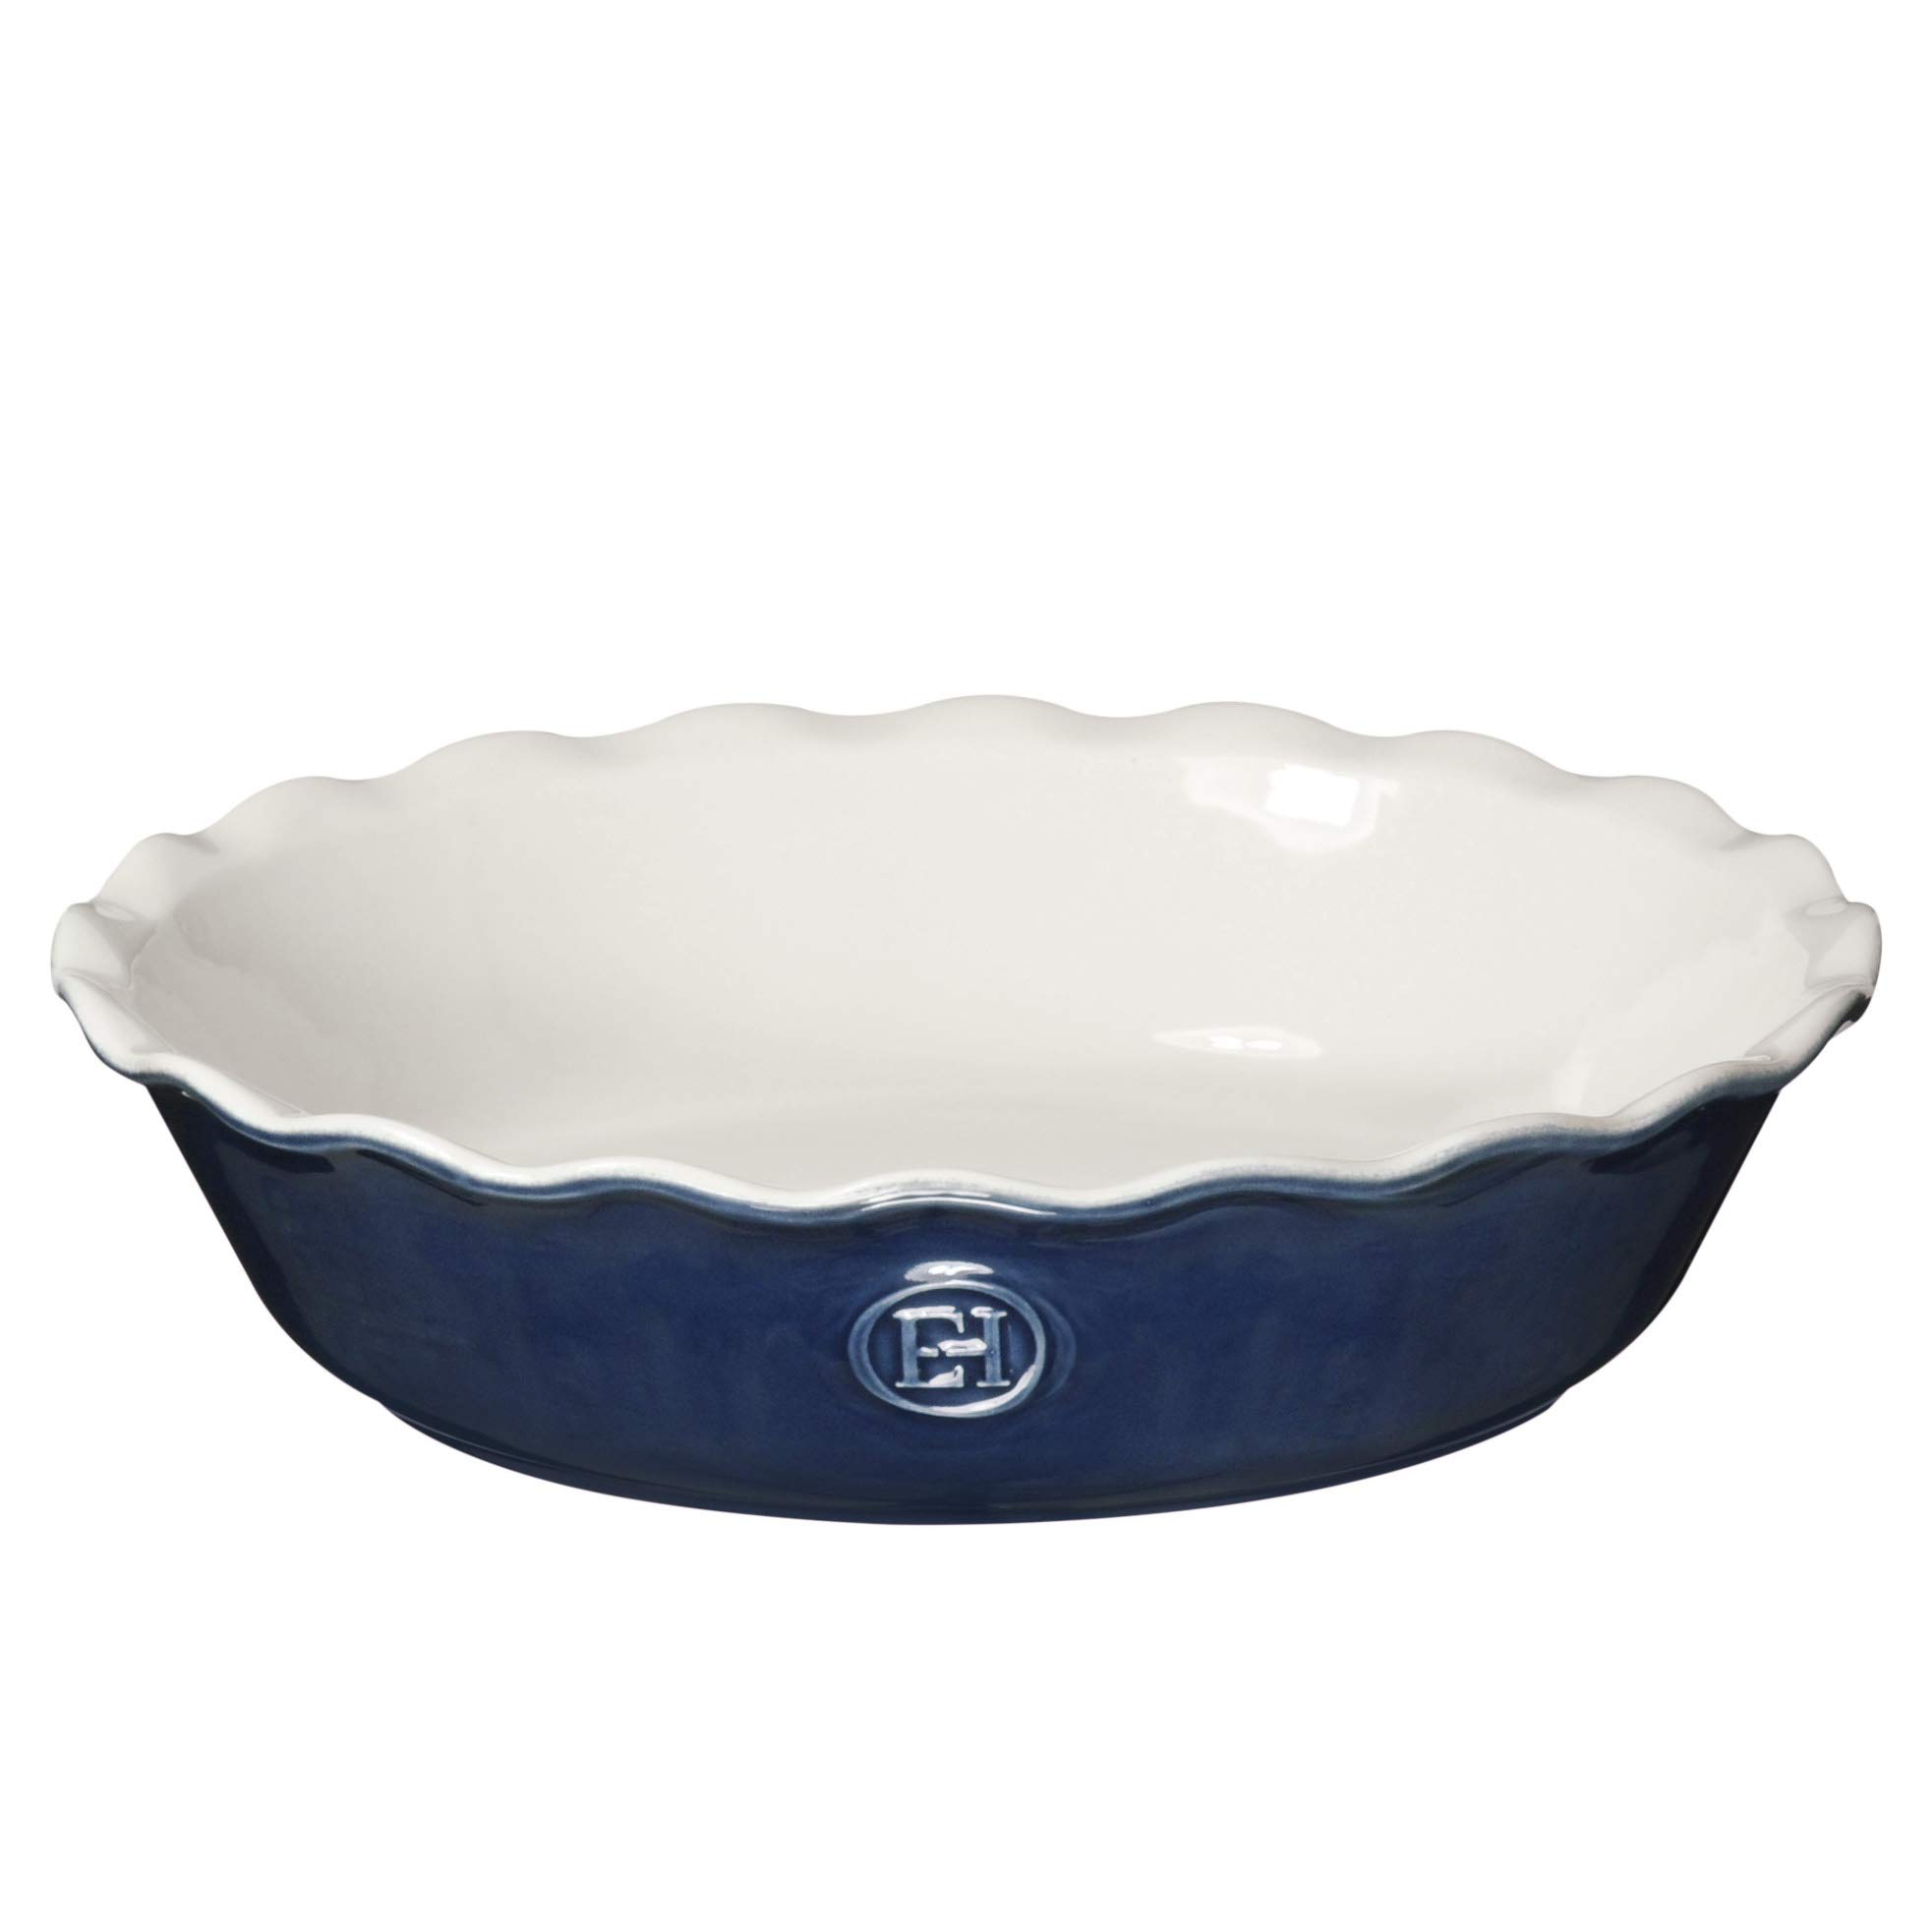 Emile Henry Made In France HR Modern Classics Pie Dish, 9'', Blue by Emile Henry